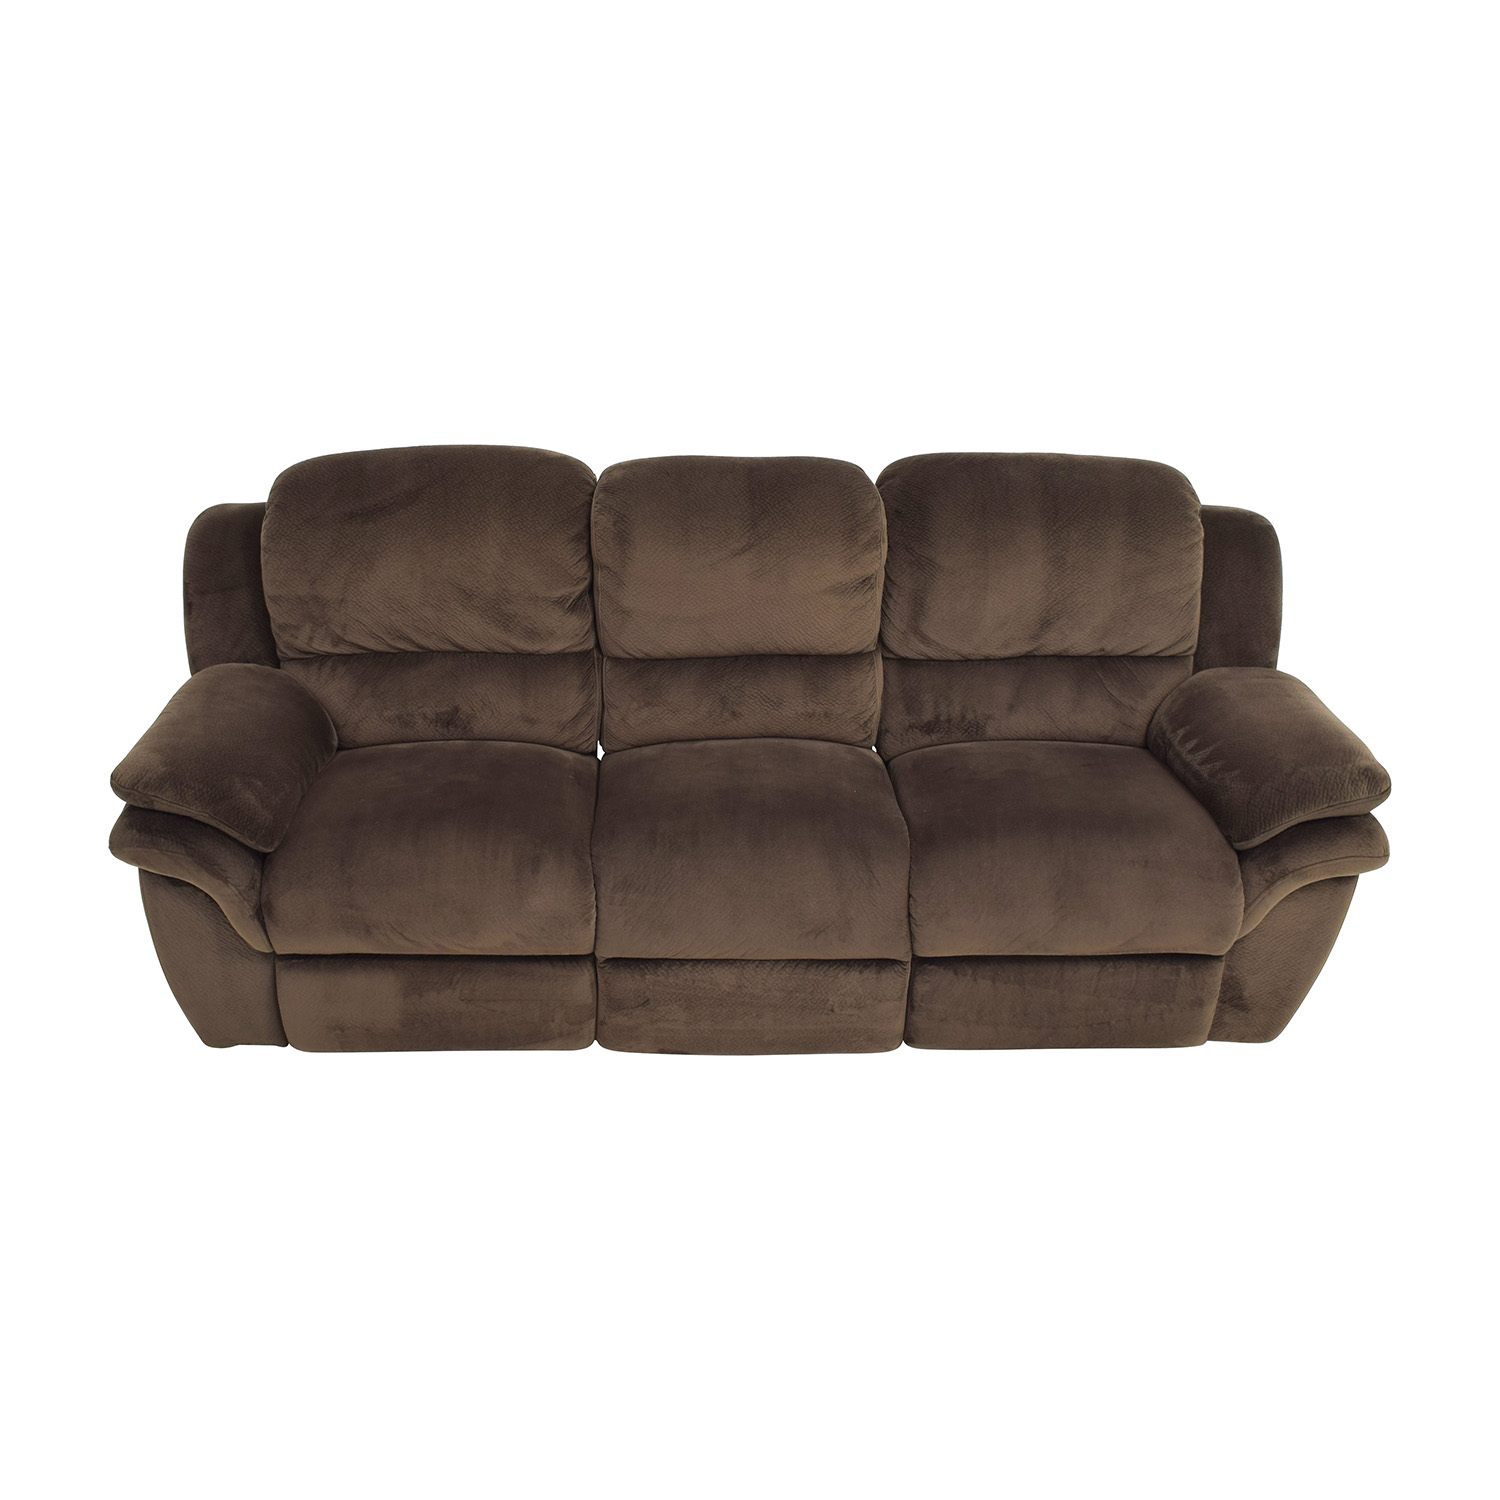 Bobs Furniture Brown Reclining Couch sale